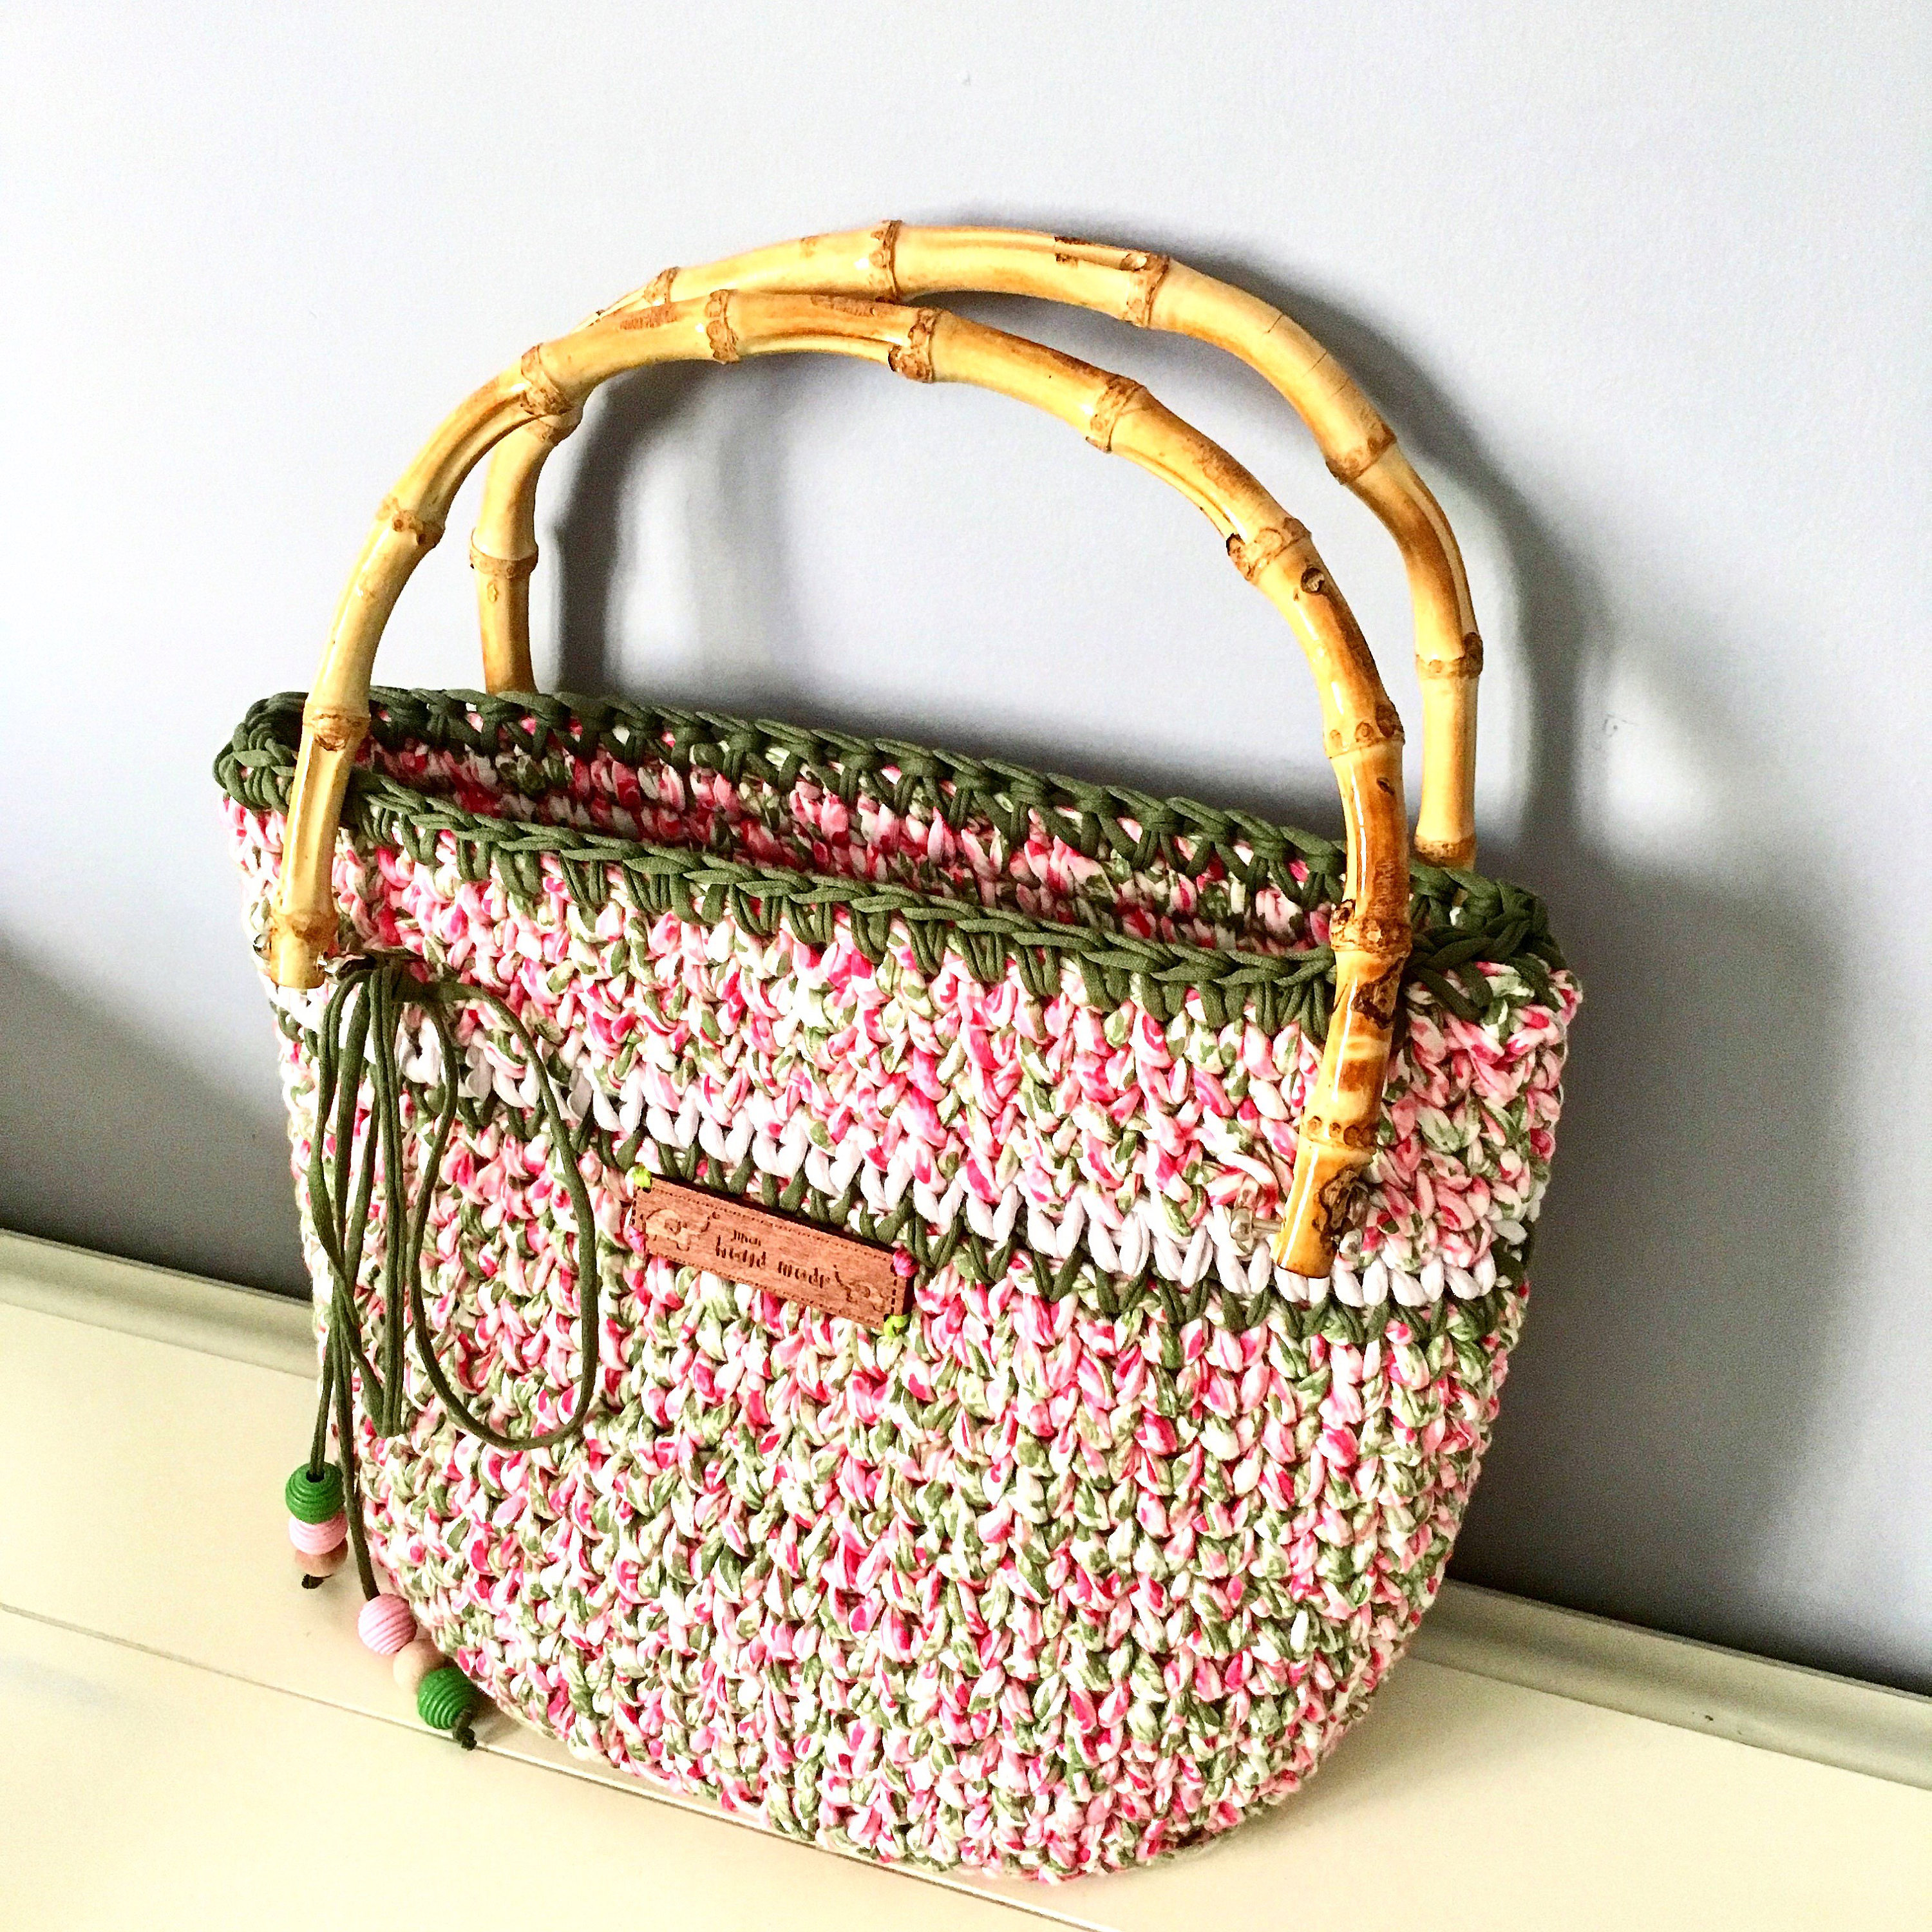 Crochet Handbag Made From Cotton Floral Thead With Wooden Handles